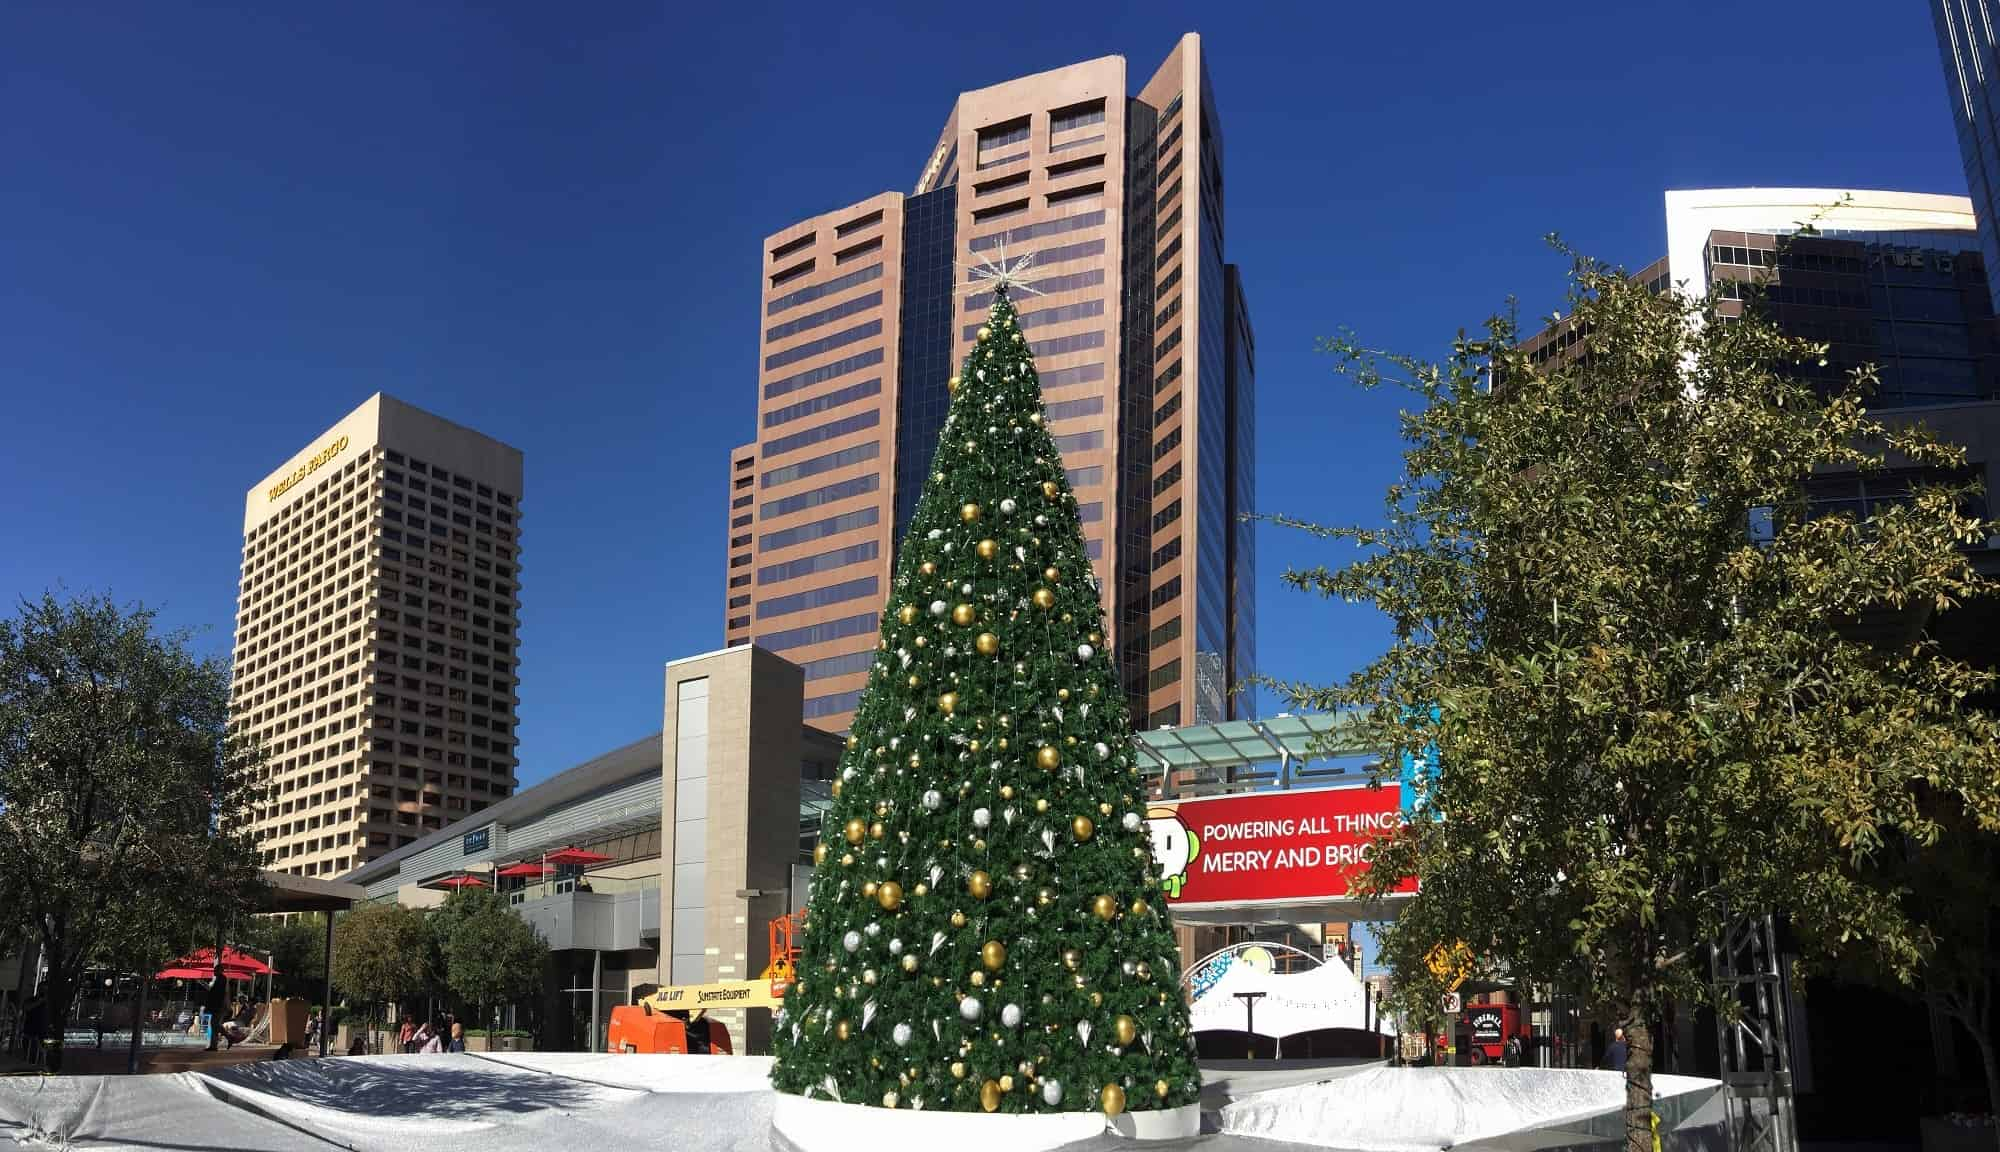 Holidays and Christmas Events in Phoenix